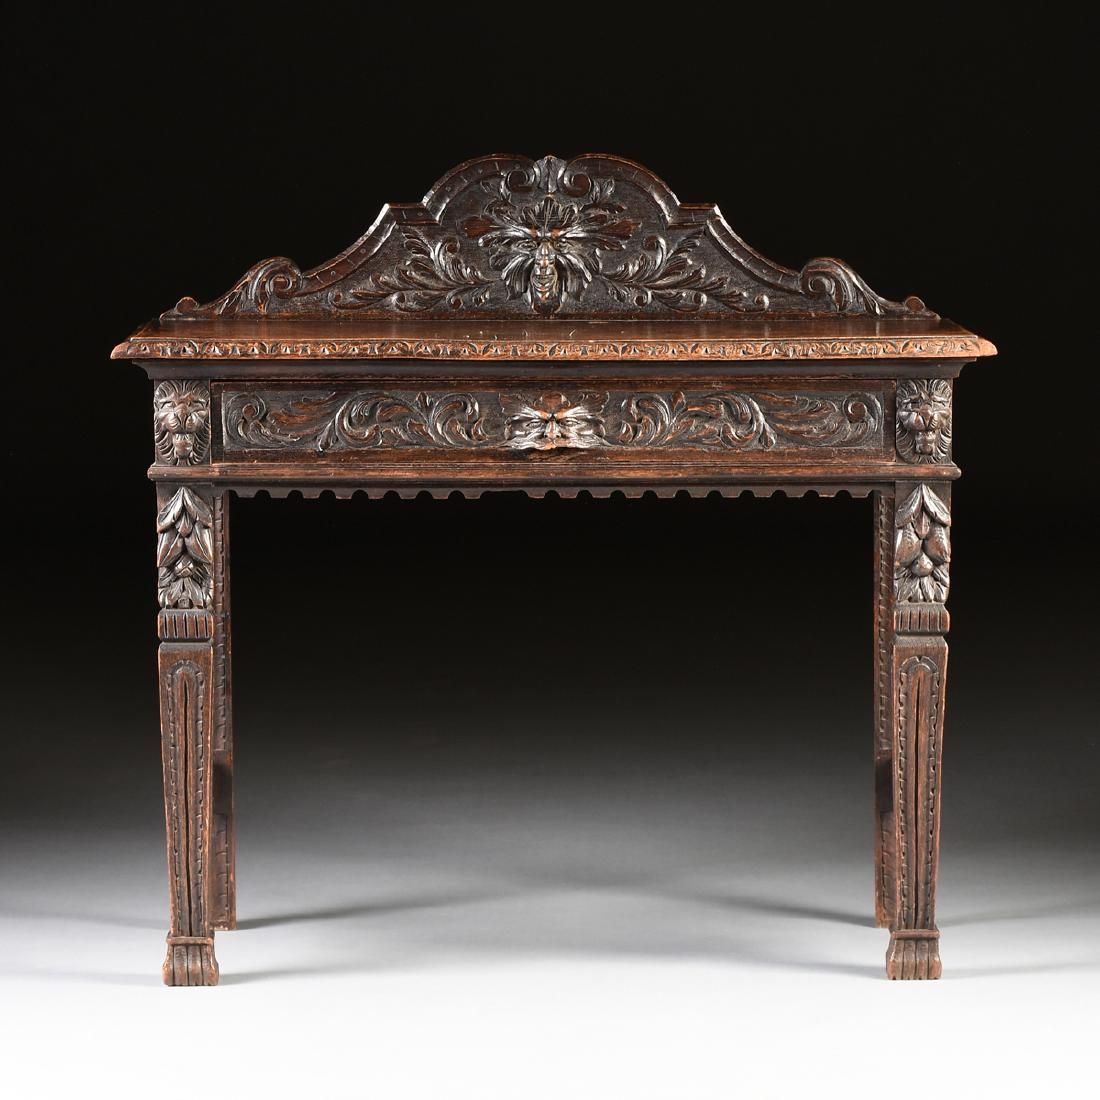 Antigüedades Muebles Antiguos A Victorian Gothic Revival Carved Oak Writing Table